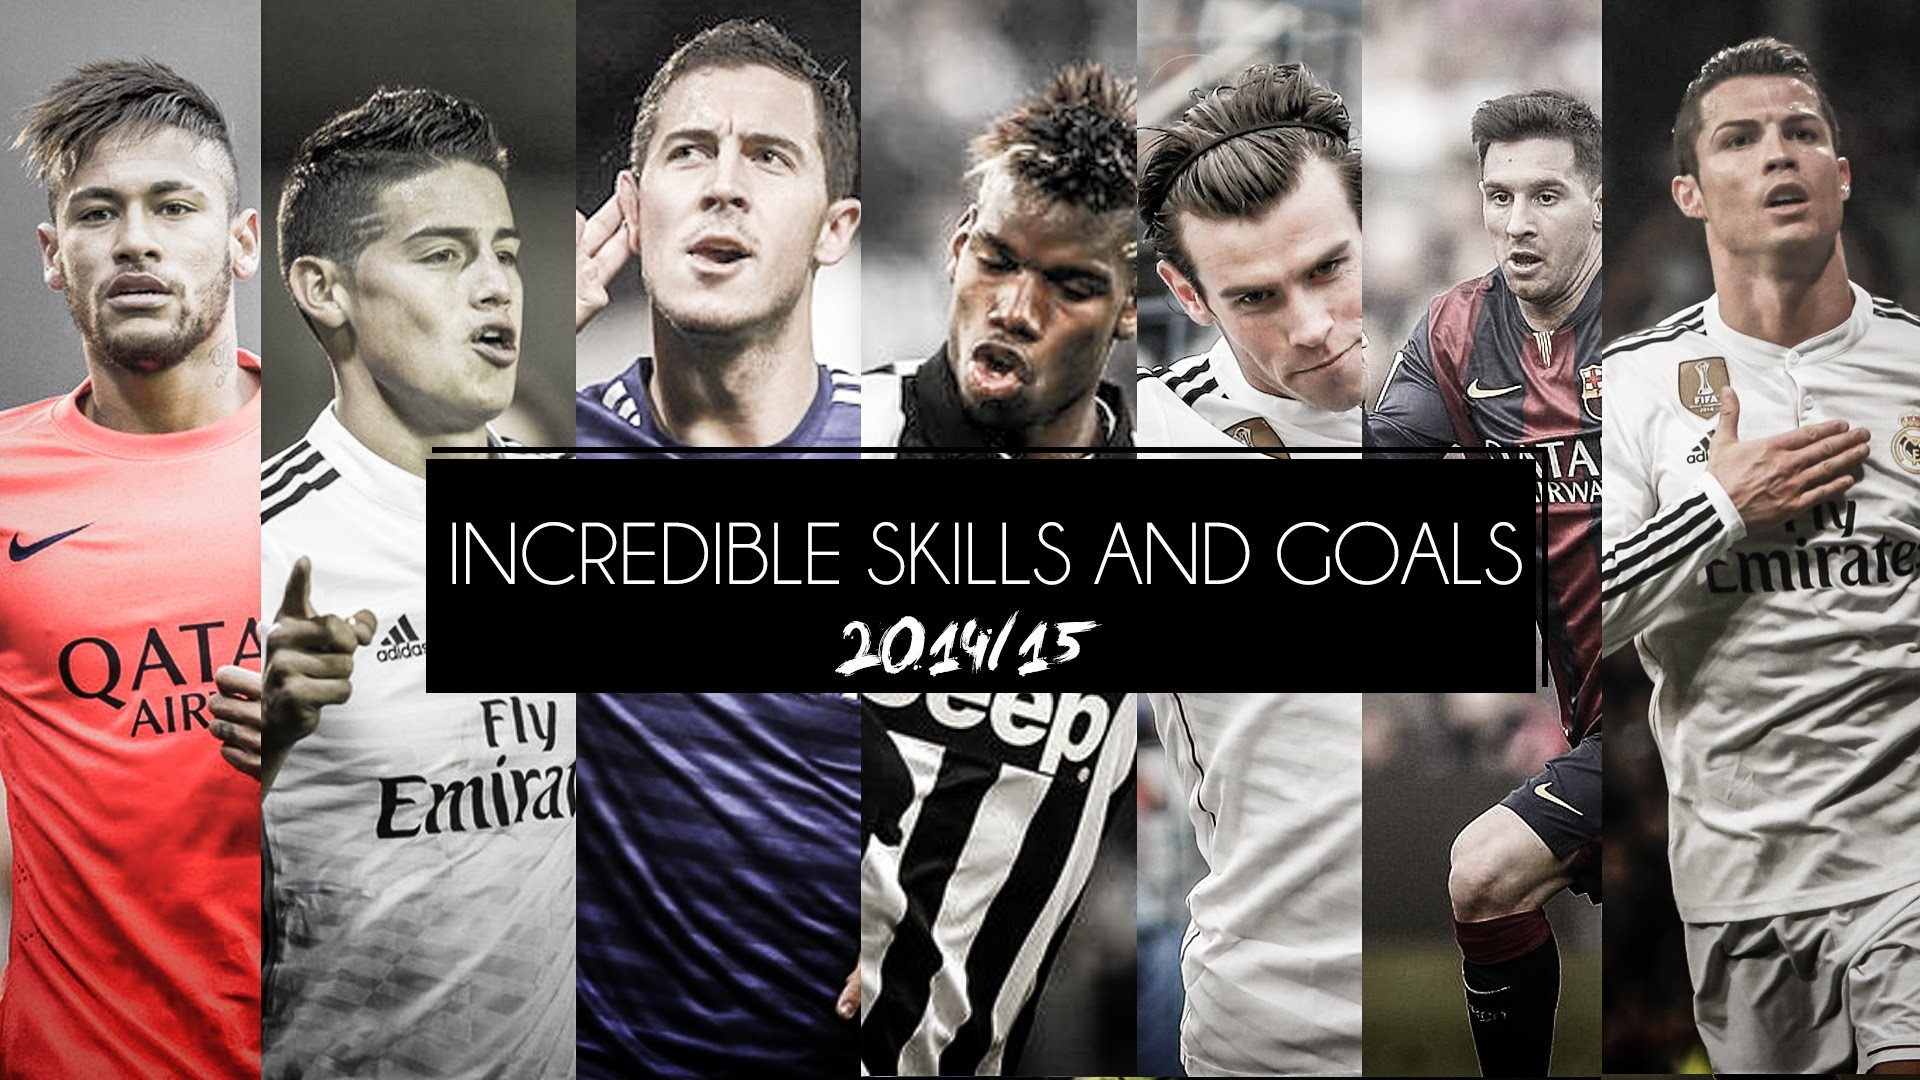 1920x1080 CRISTIANO RONALDO ○ NEYMAR ○ MESSI ○ BALE○POGBA○HAZARD○J.RODRIGUEZ -  Incredible Skills & Goals 2015 - YouTube